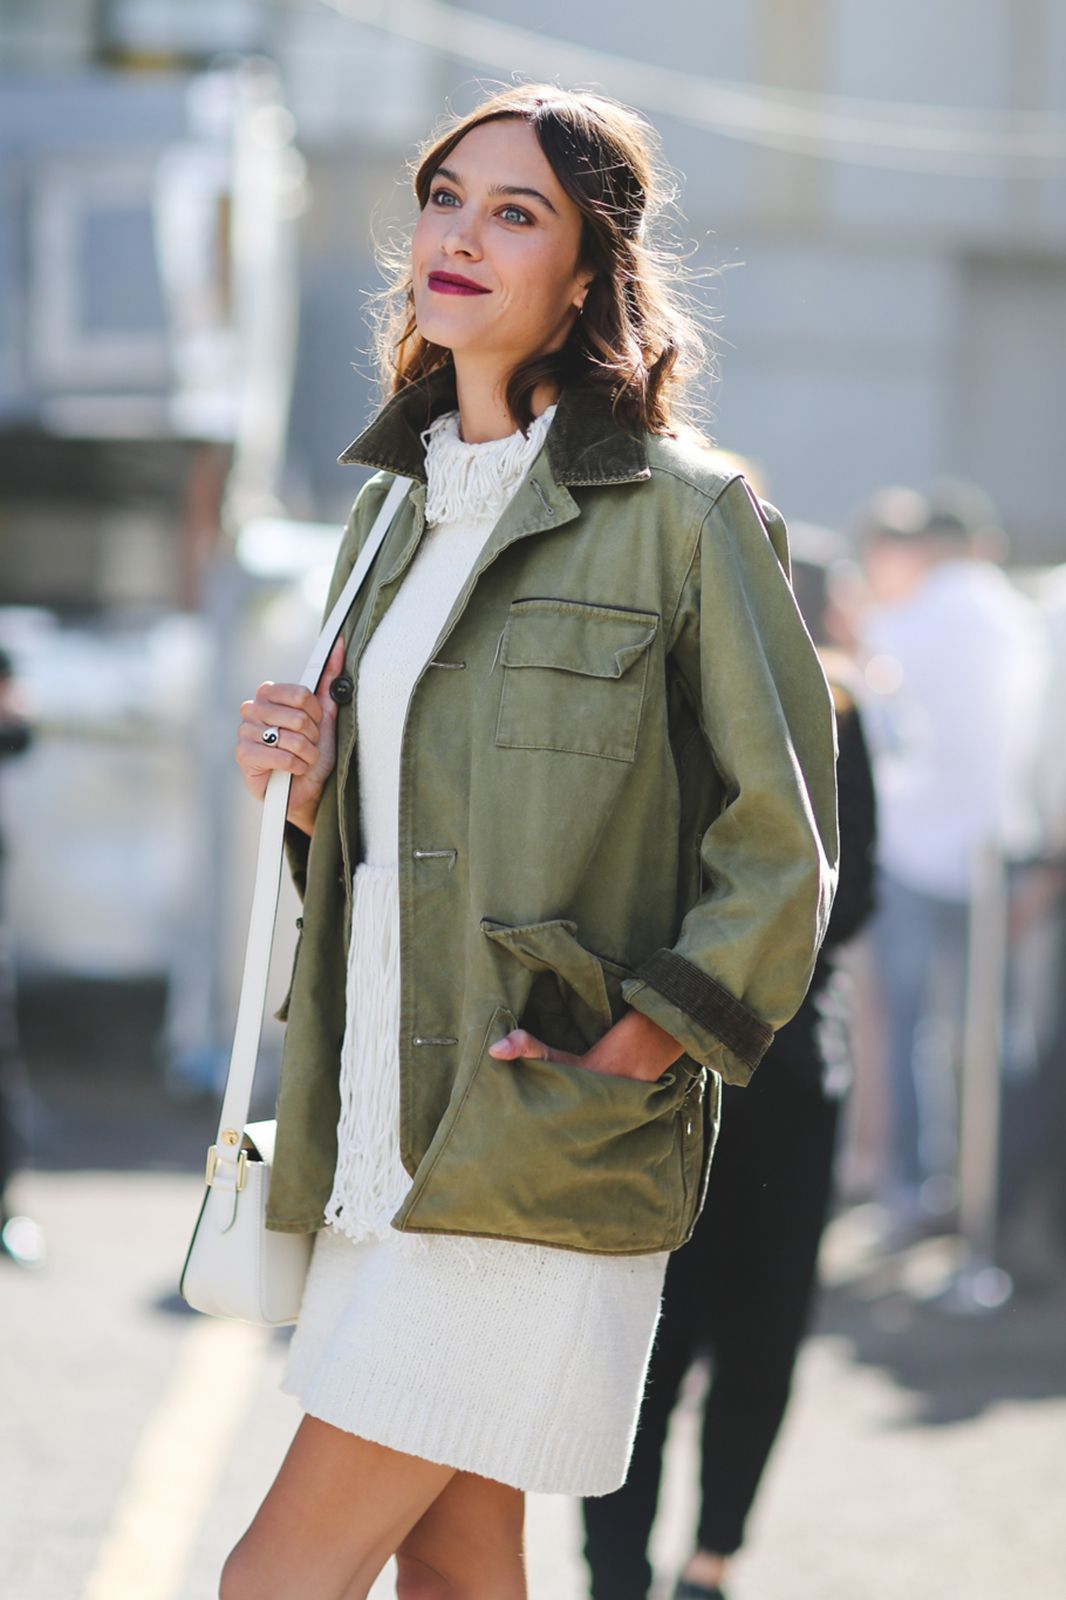 The Most Authentically Inspiring Street Style From New York #refinery29 http://www.refinery29.com/2015/09/93788/ny-fashion-week-spring-2016-street-style-pictures#slide-12 Alexa Chung keeping it simple — and breaking out that autumn-esque lip....